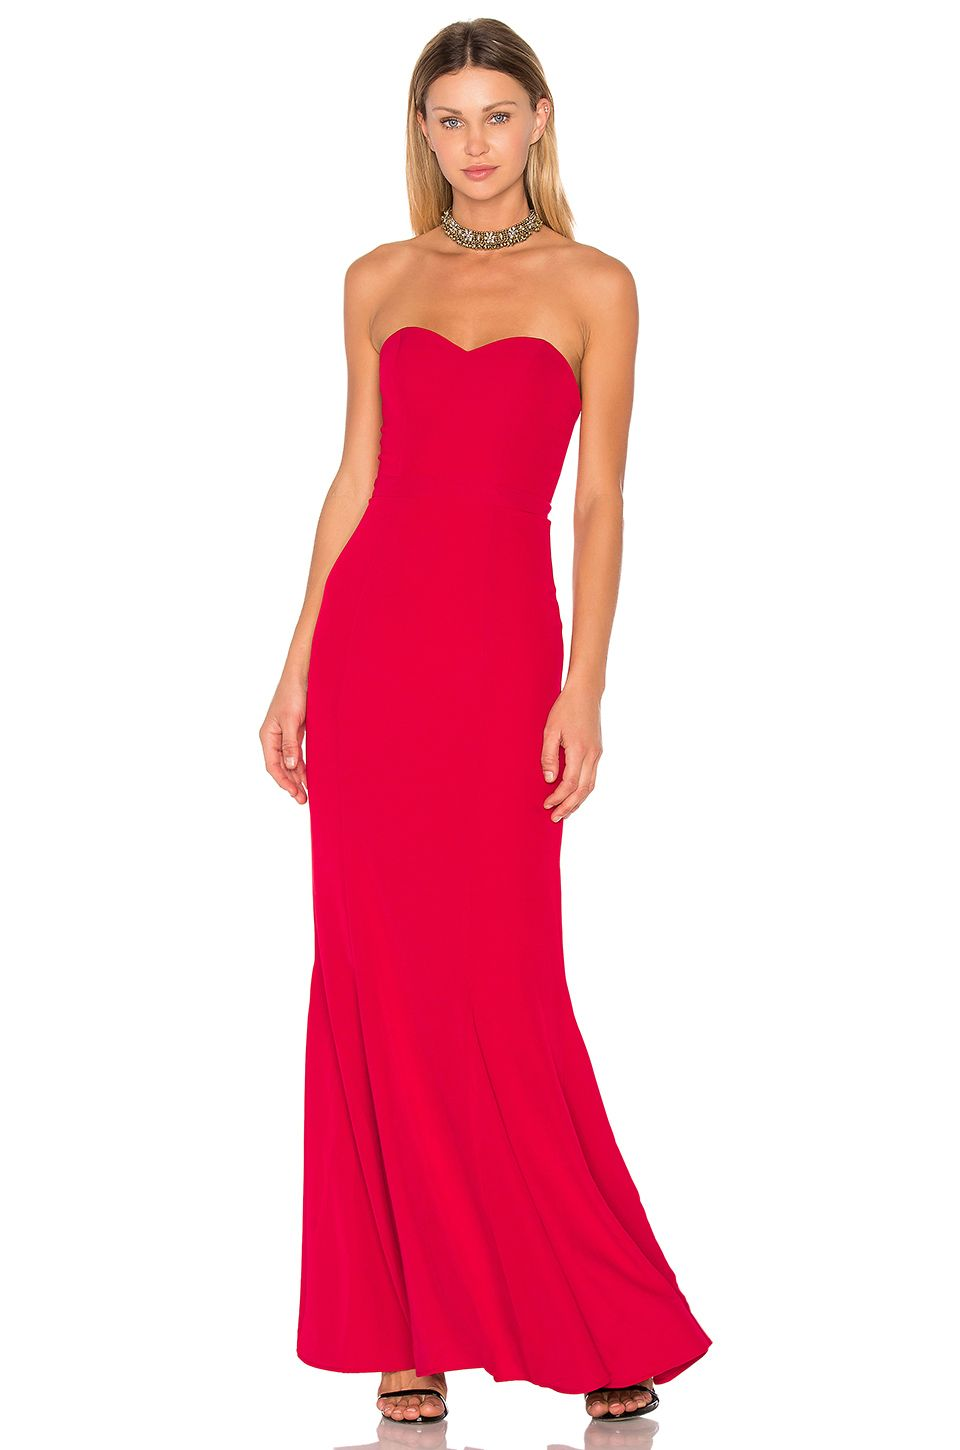 Lovers friends x revolve christy gown in red revolve red